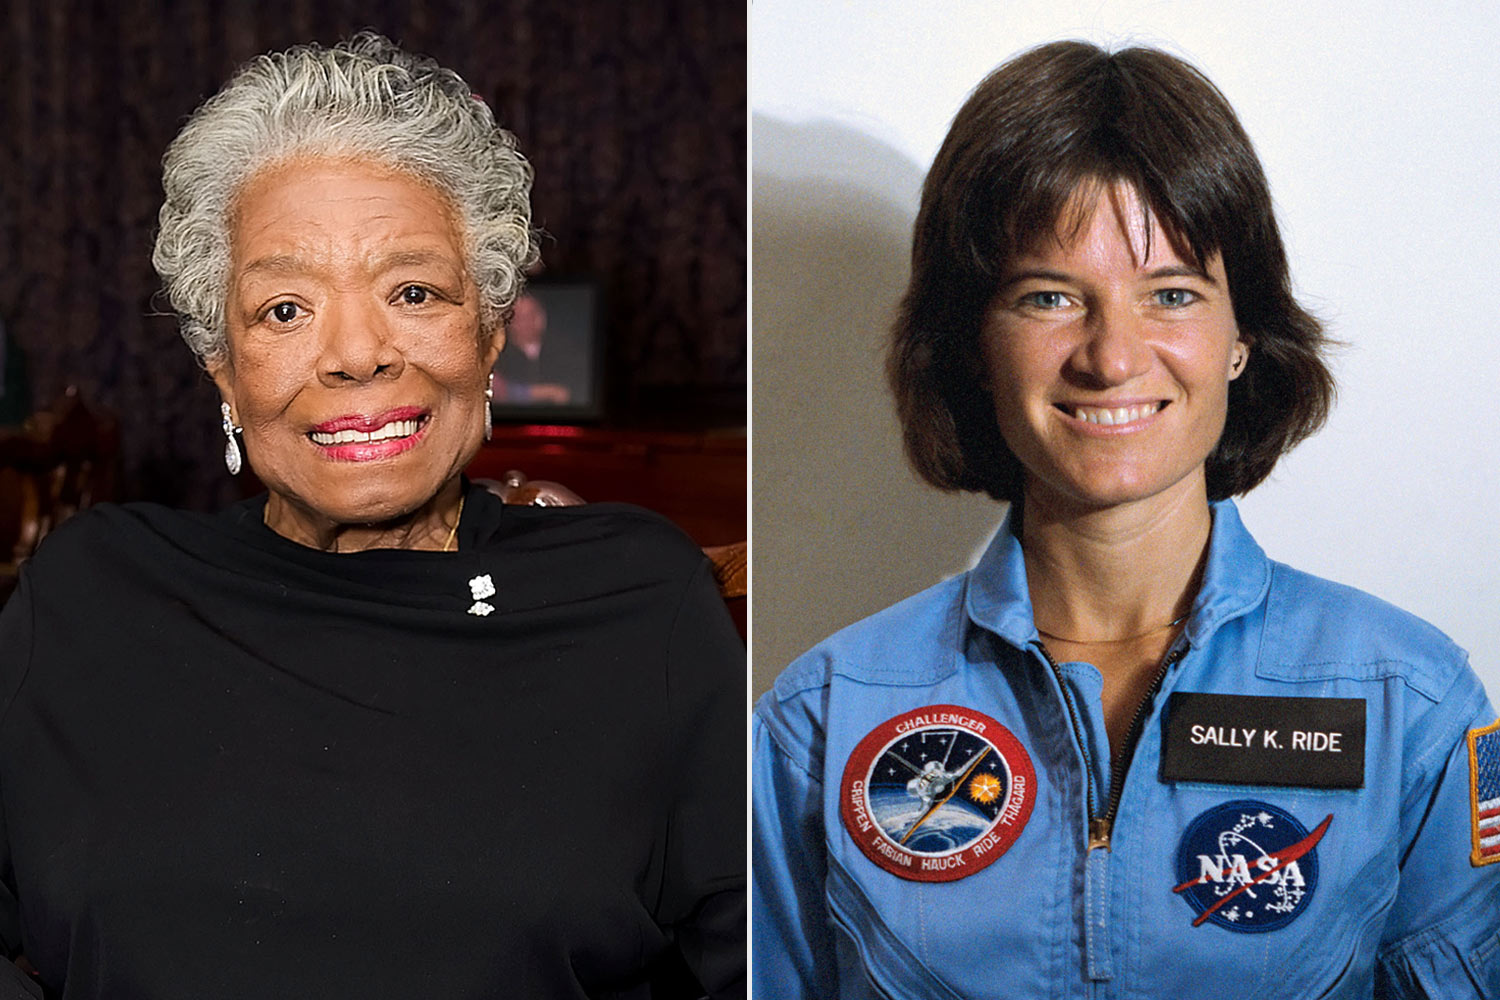 Maya Angelou (left) and Dr. Sally Ride (right)